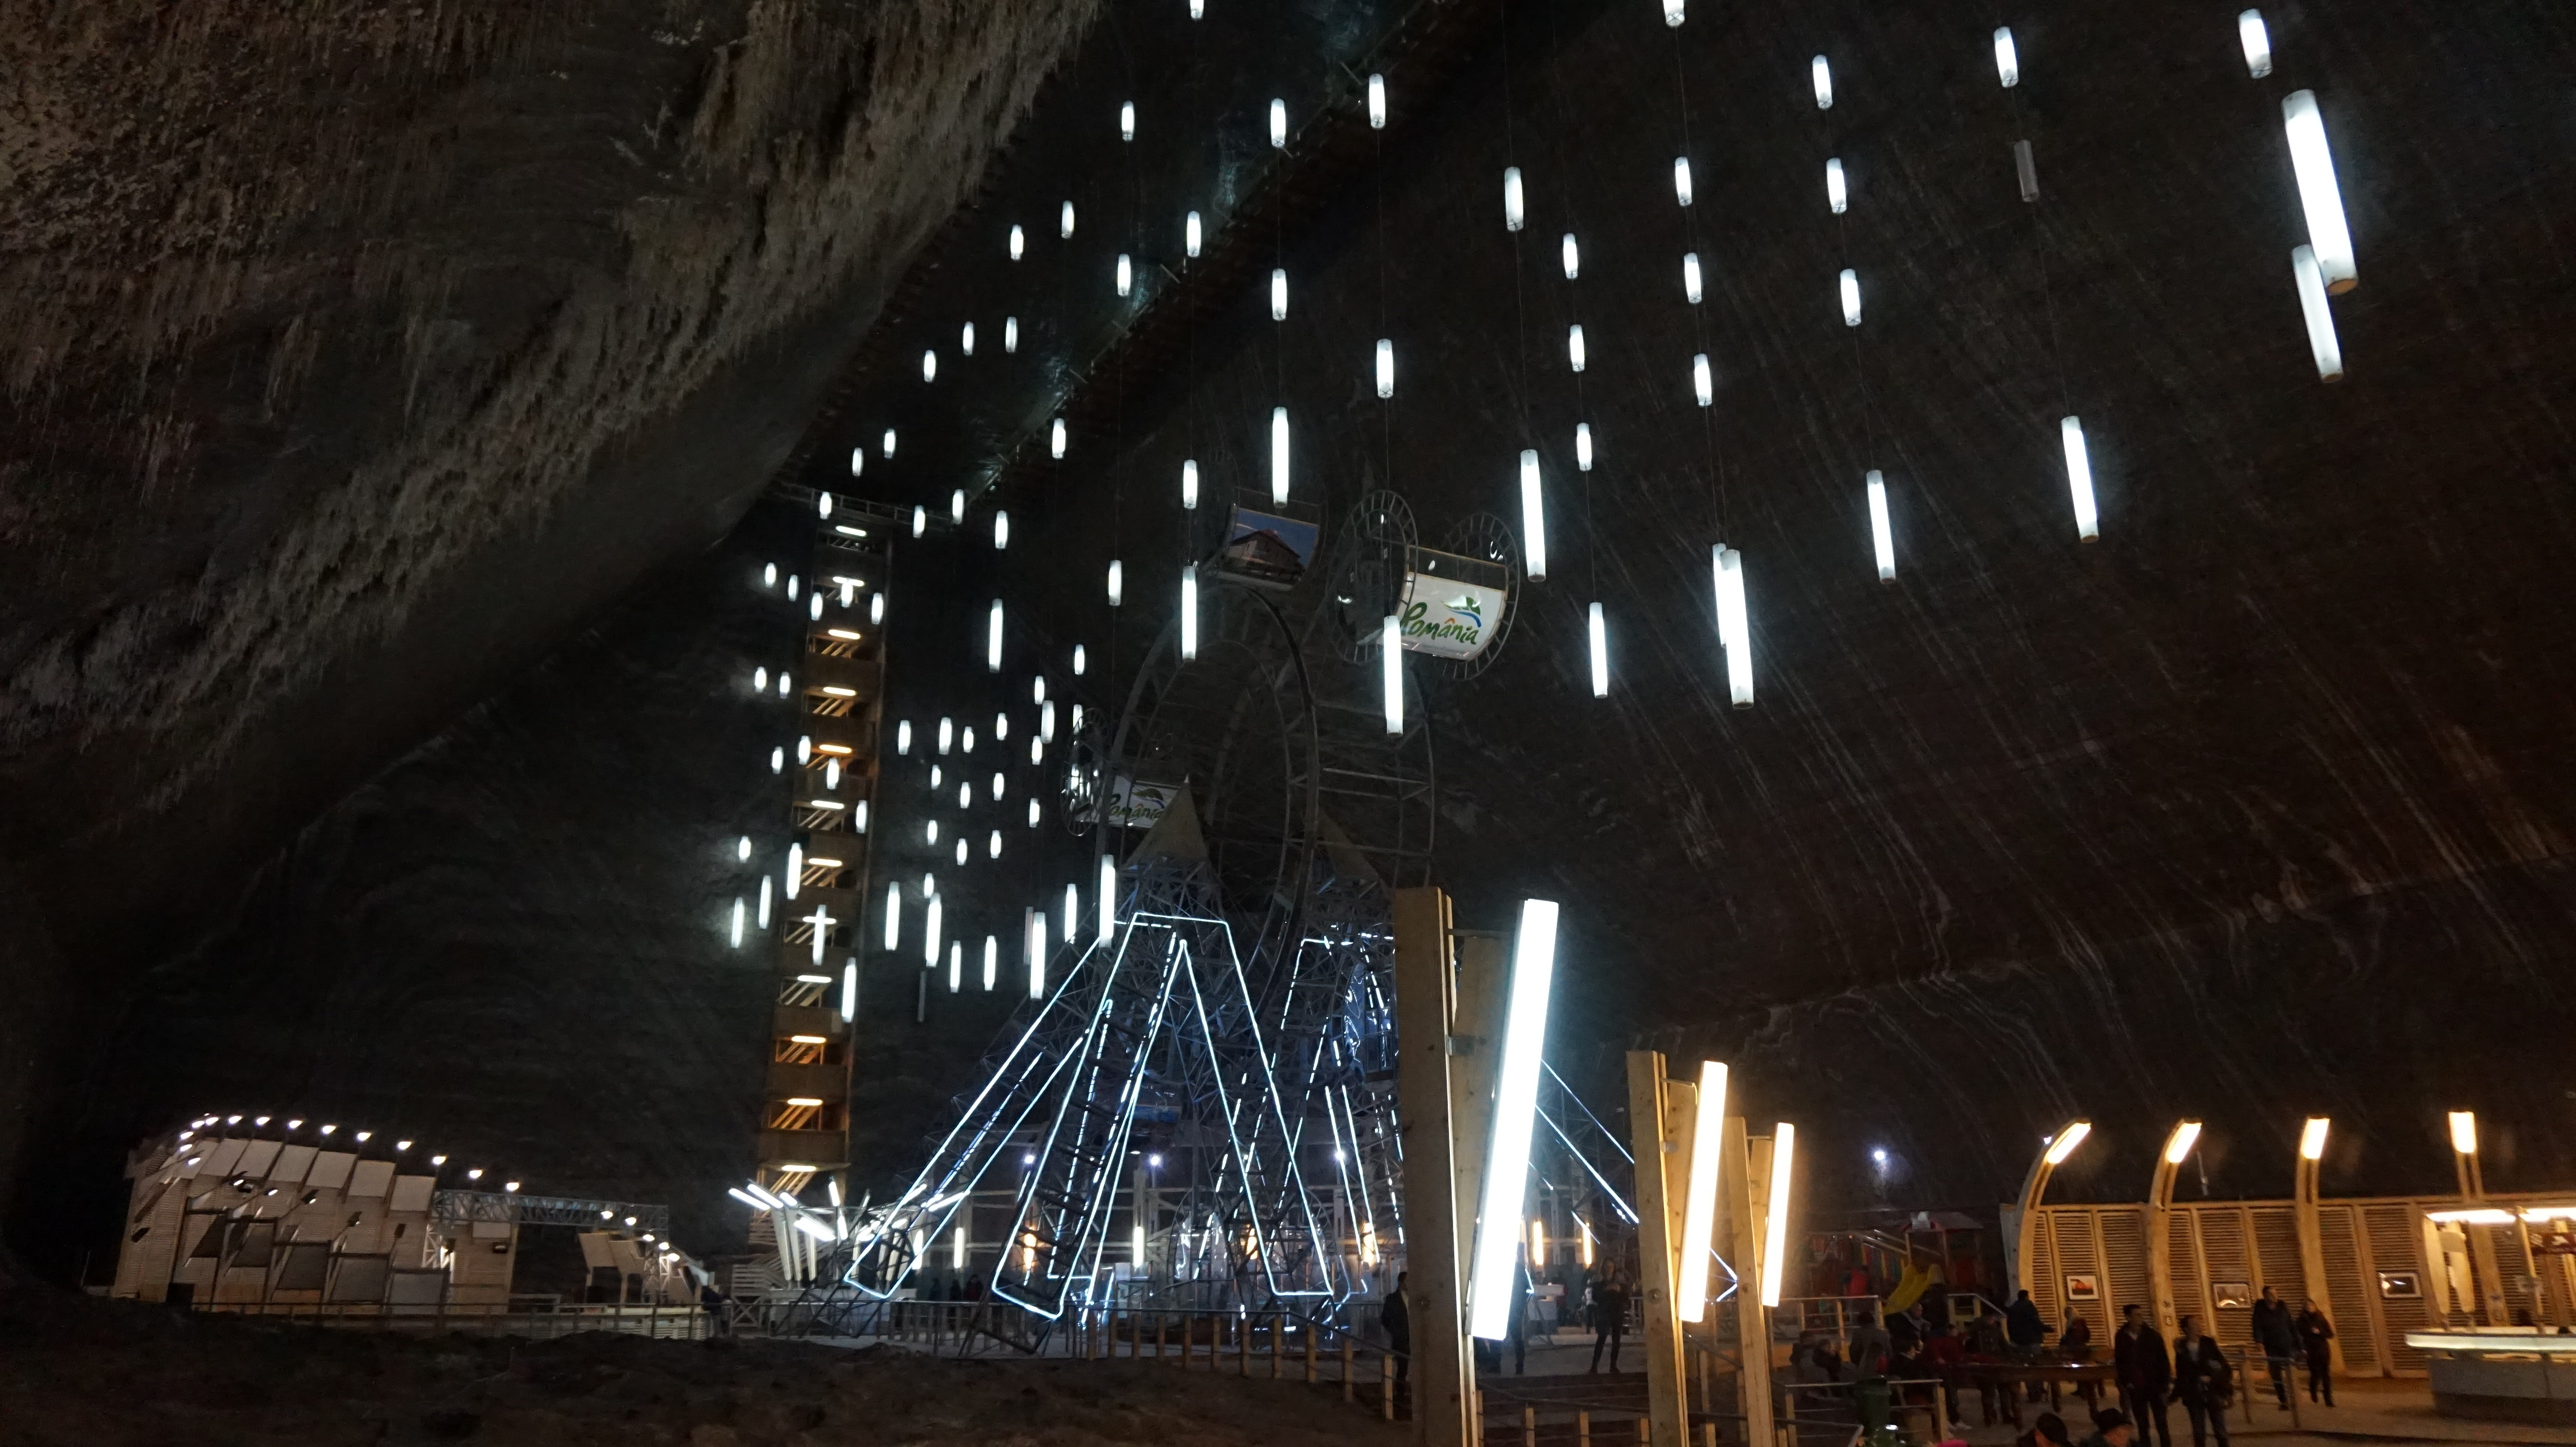 Panoramic view of Turda Salt mine's ground floor, with the ferris wheel